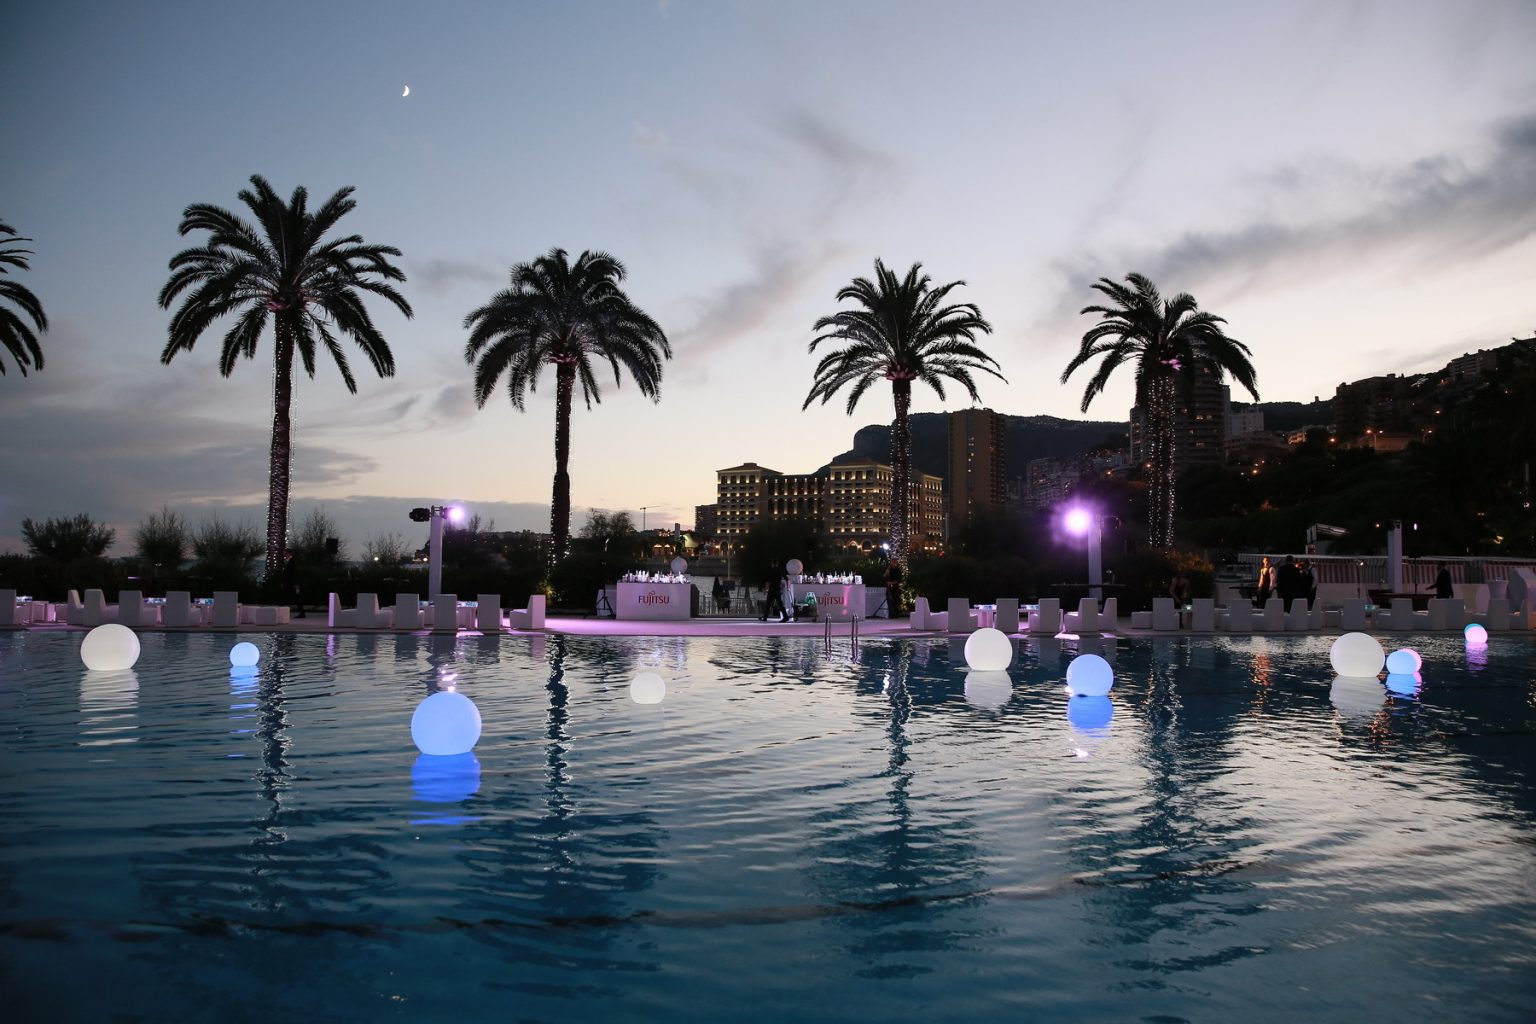 Le Deck Monte Carlo Pool Evening 14 - Le Deck Monte Carlo Pool Evening